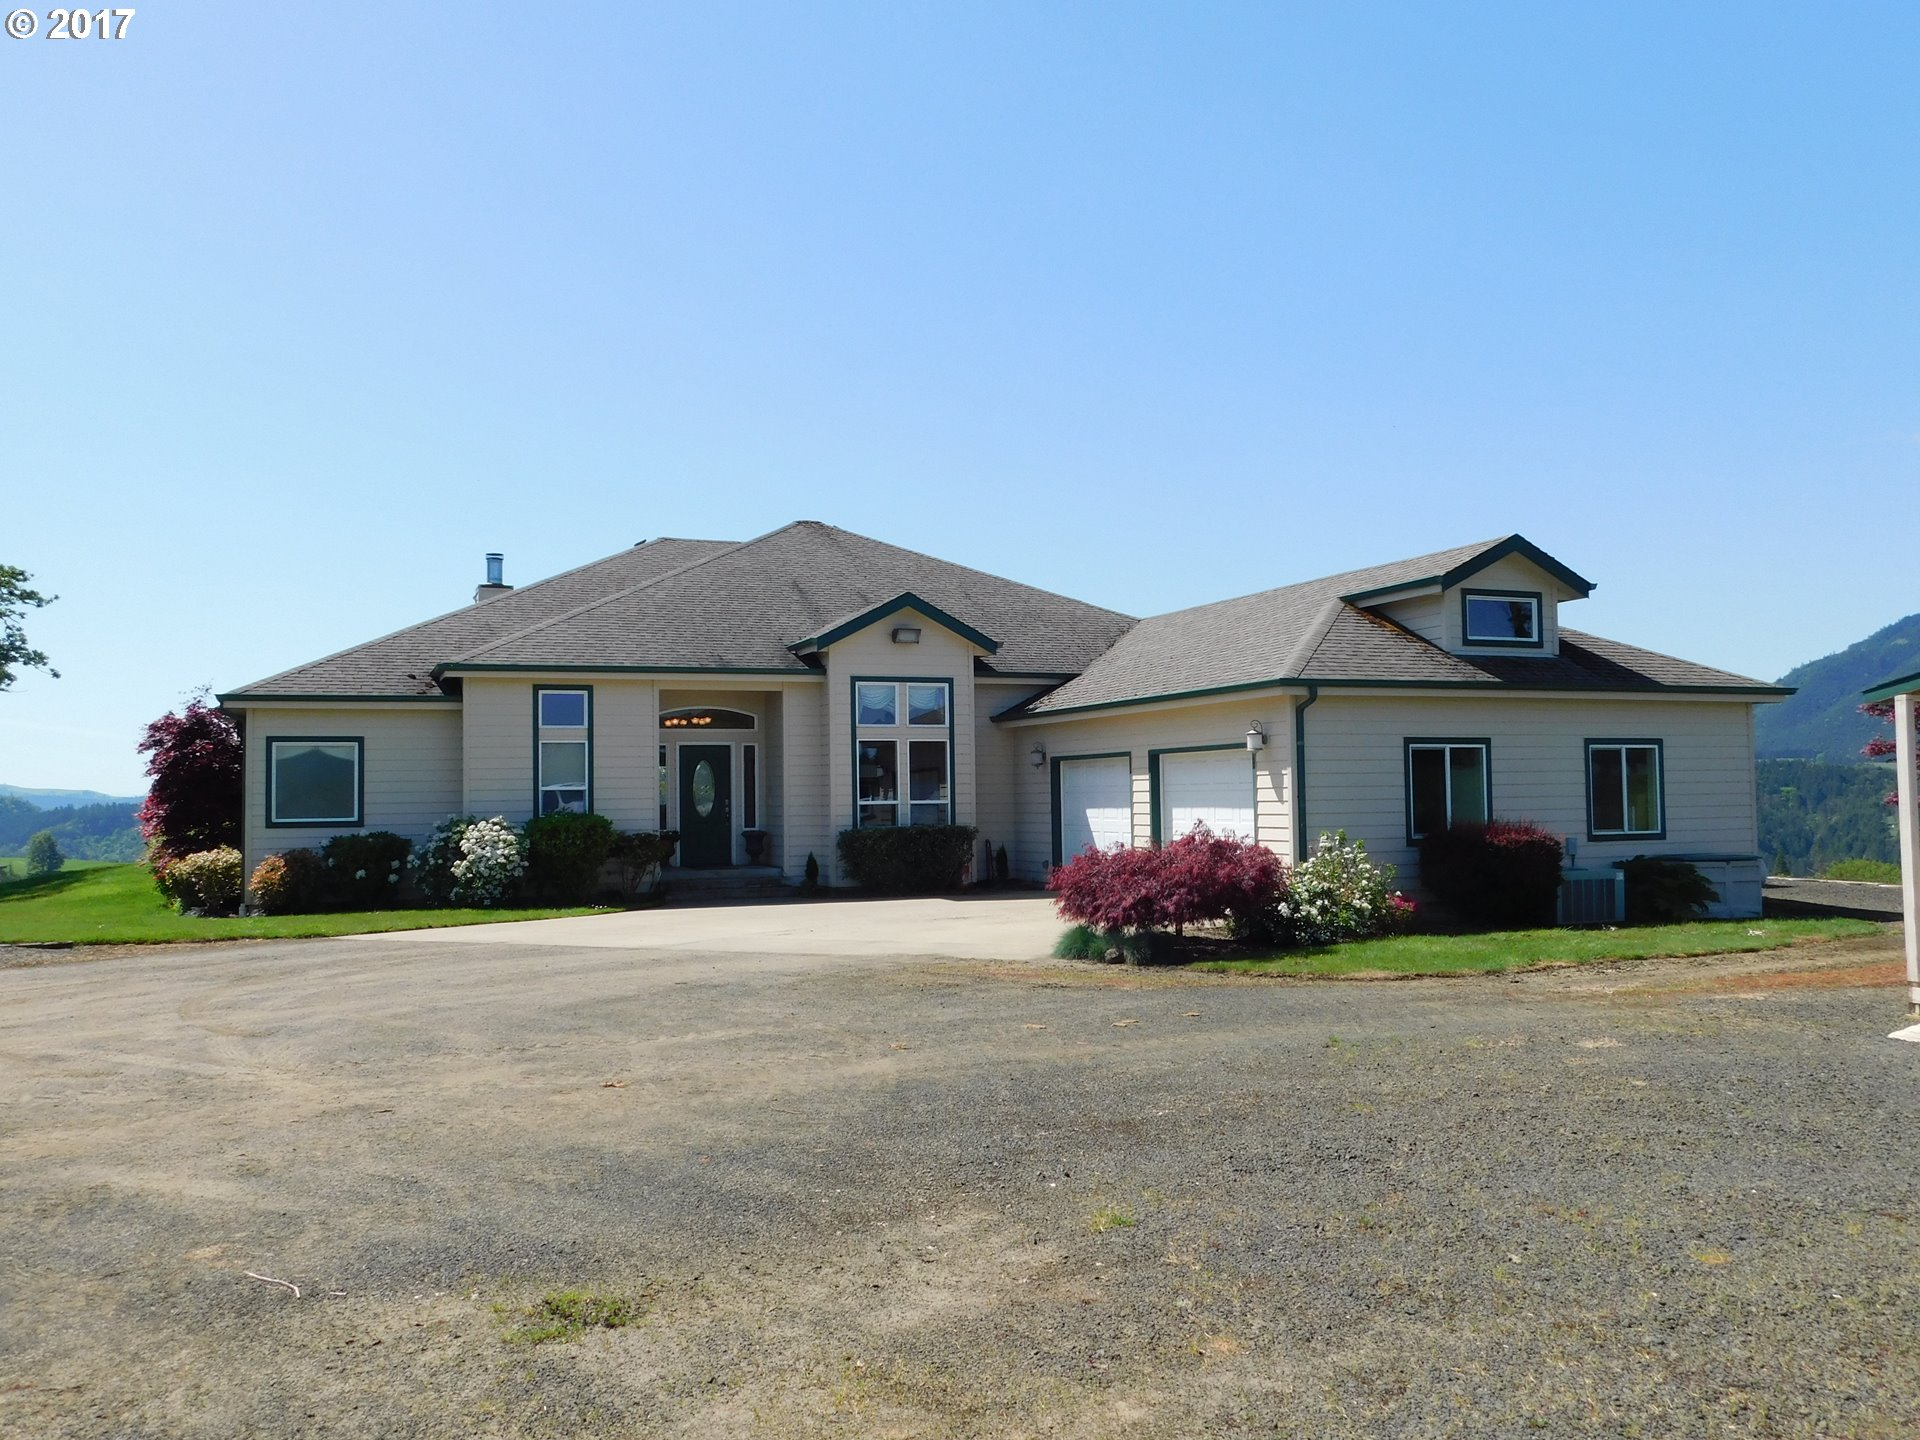 1310 MISTY OAKS LN, Oakland, OR 97462